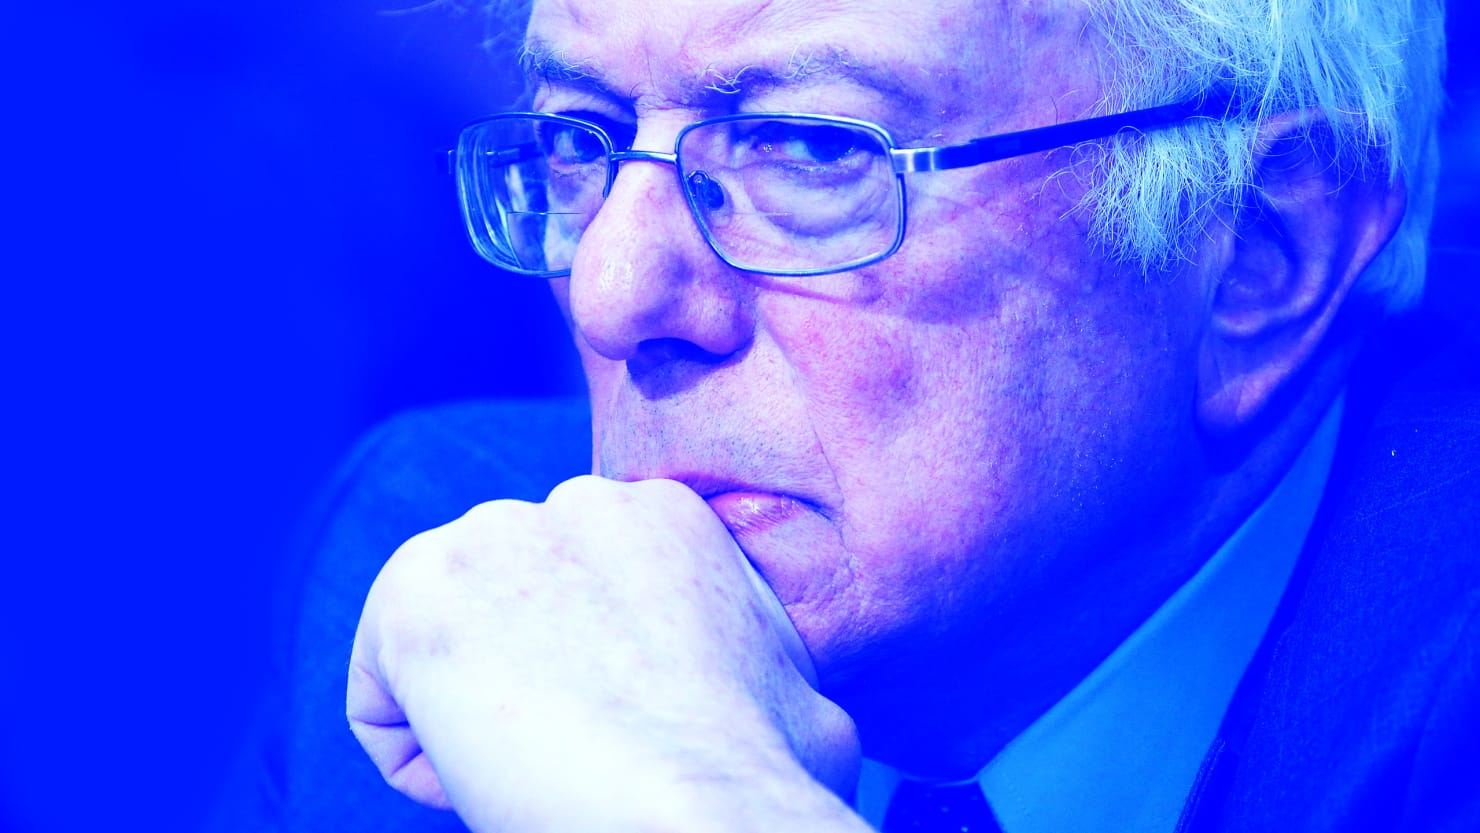 Bernie Sanders: The War on Terror 'Has Been a Disaster for the American People'